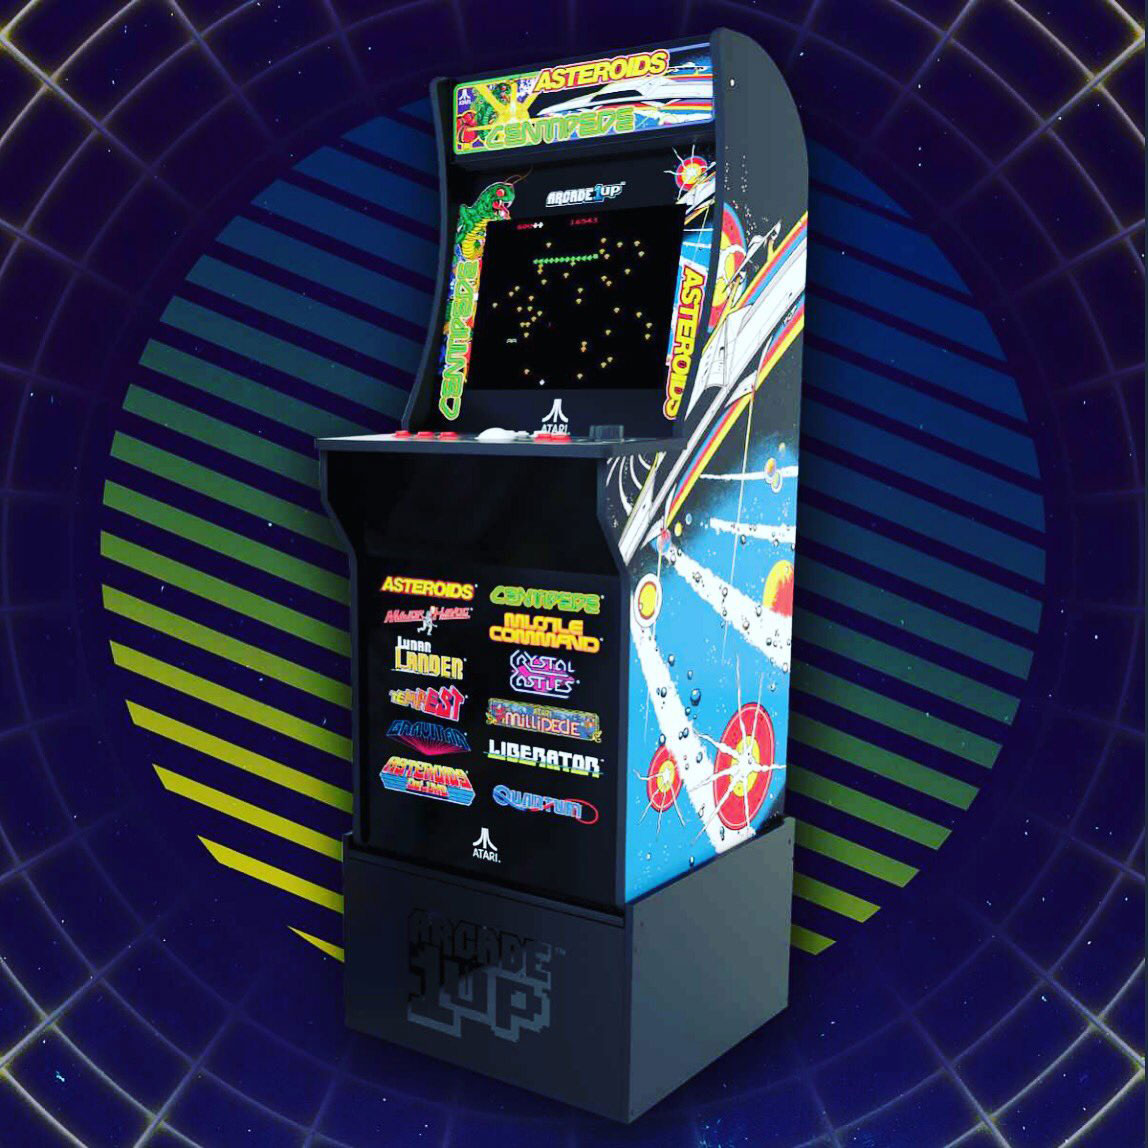 Manuals & Guides Reasonable Atari Dig Dug Arcade Game Manuals Suitable For Men And Women Of All Ages In All Seasons Arcade Gaming